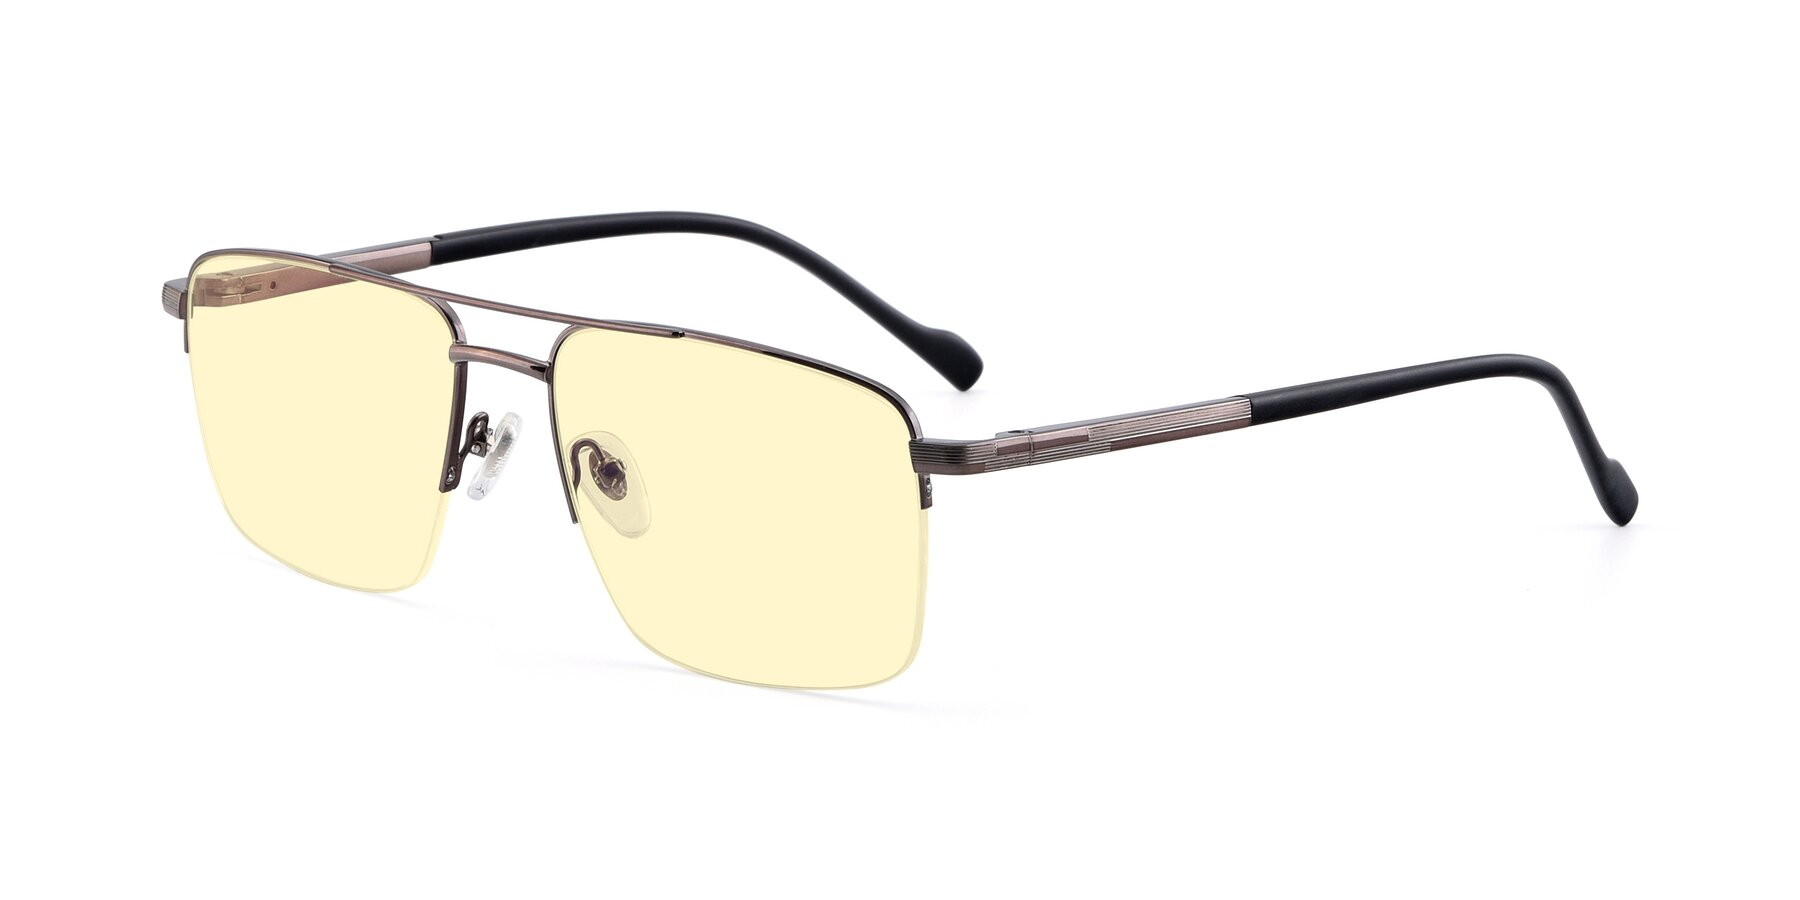 Angle of 19013 in Gunmetal with Light Yellow Tinted Lenses